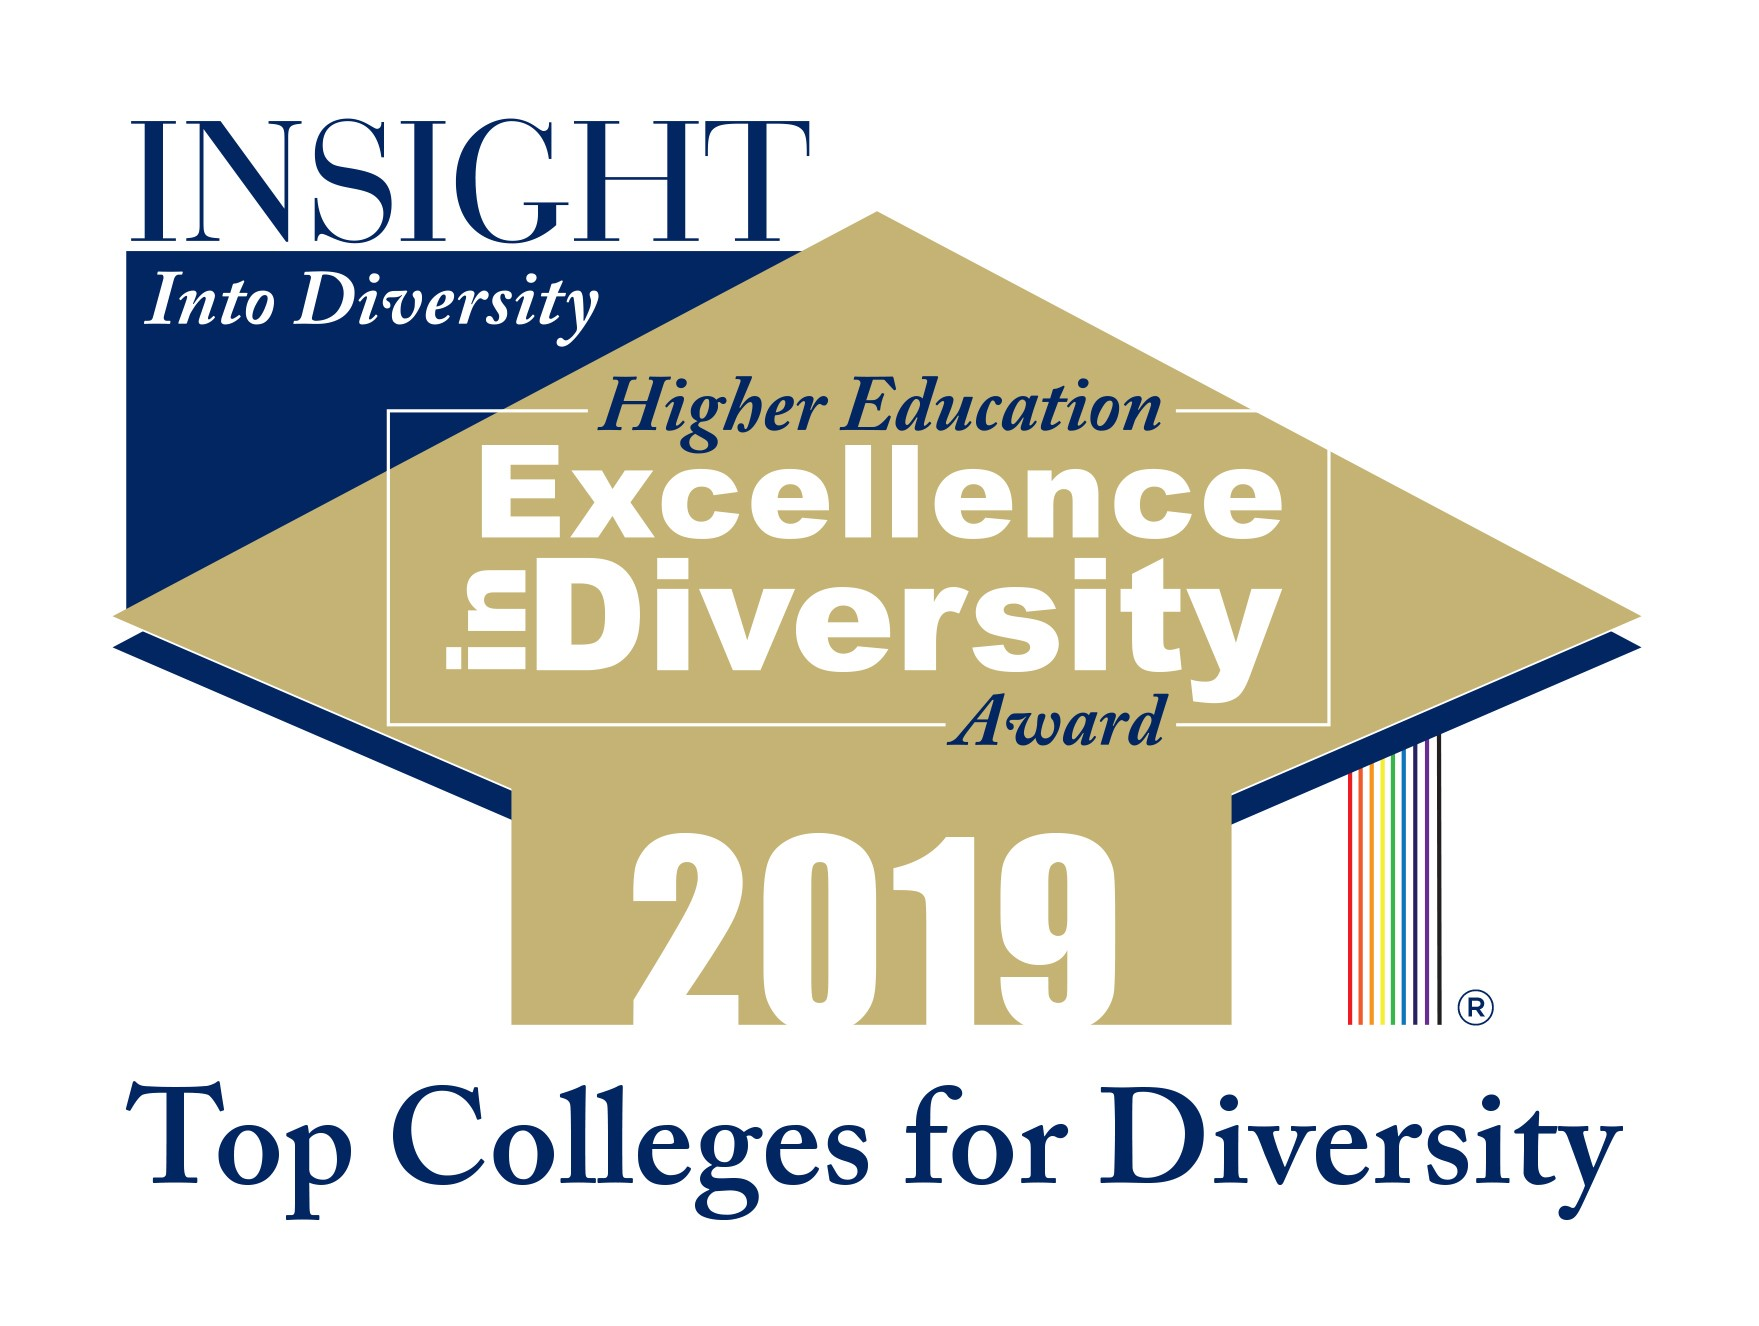 Top colleges for diversity badge 2019